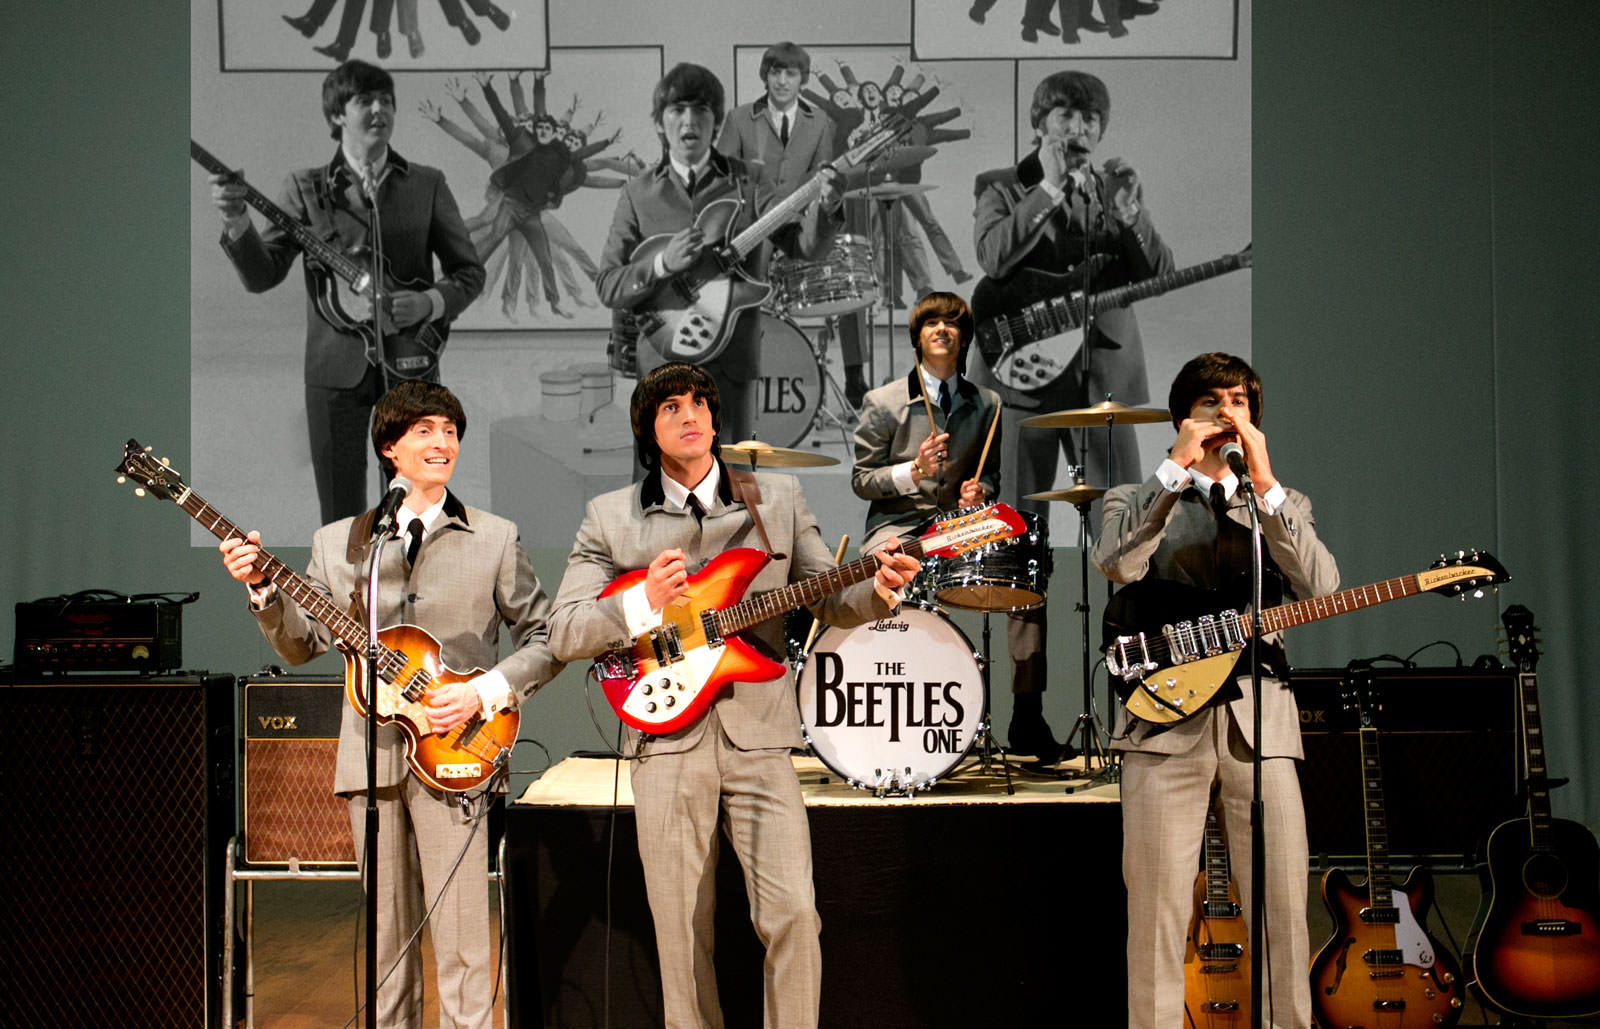 The Beatles Cover - The Beetles One - Primeira Fase